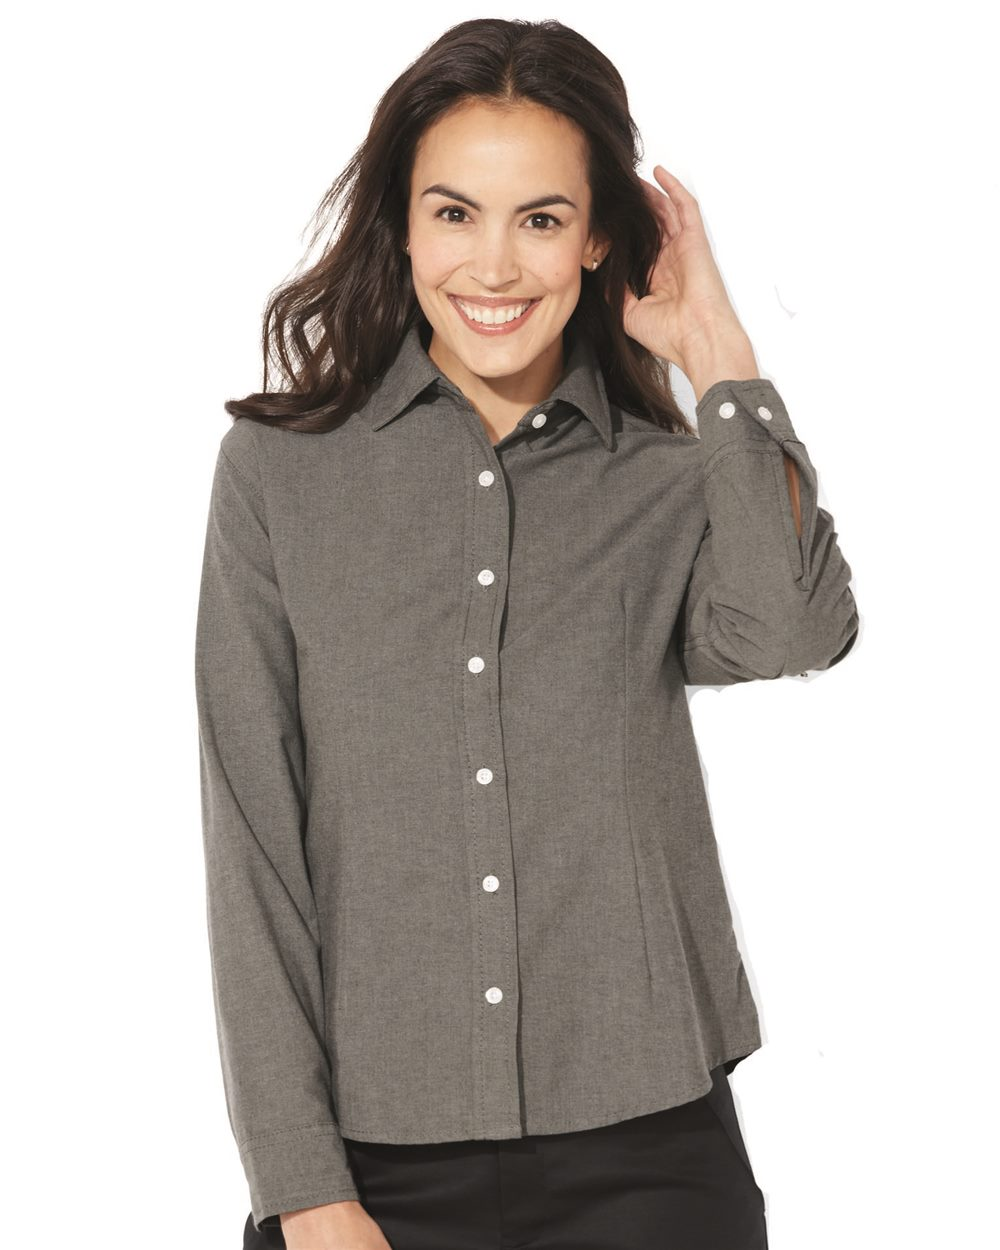 FeatherLite 5233 Ladies' Long Sleeve Oxford Shirt